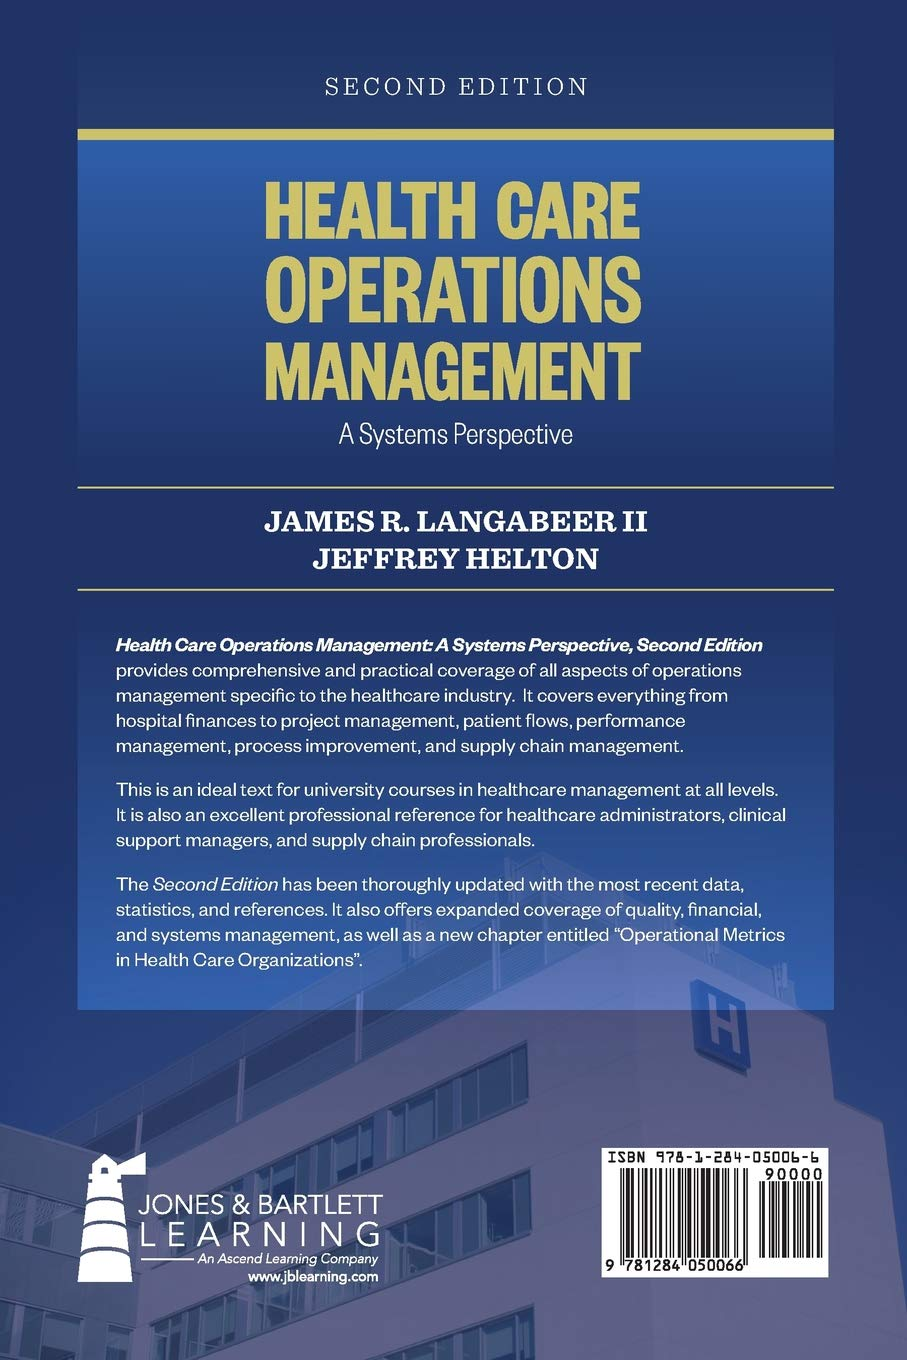 Buy Health Care Operations Management Book Online at Low